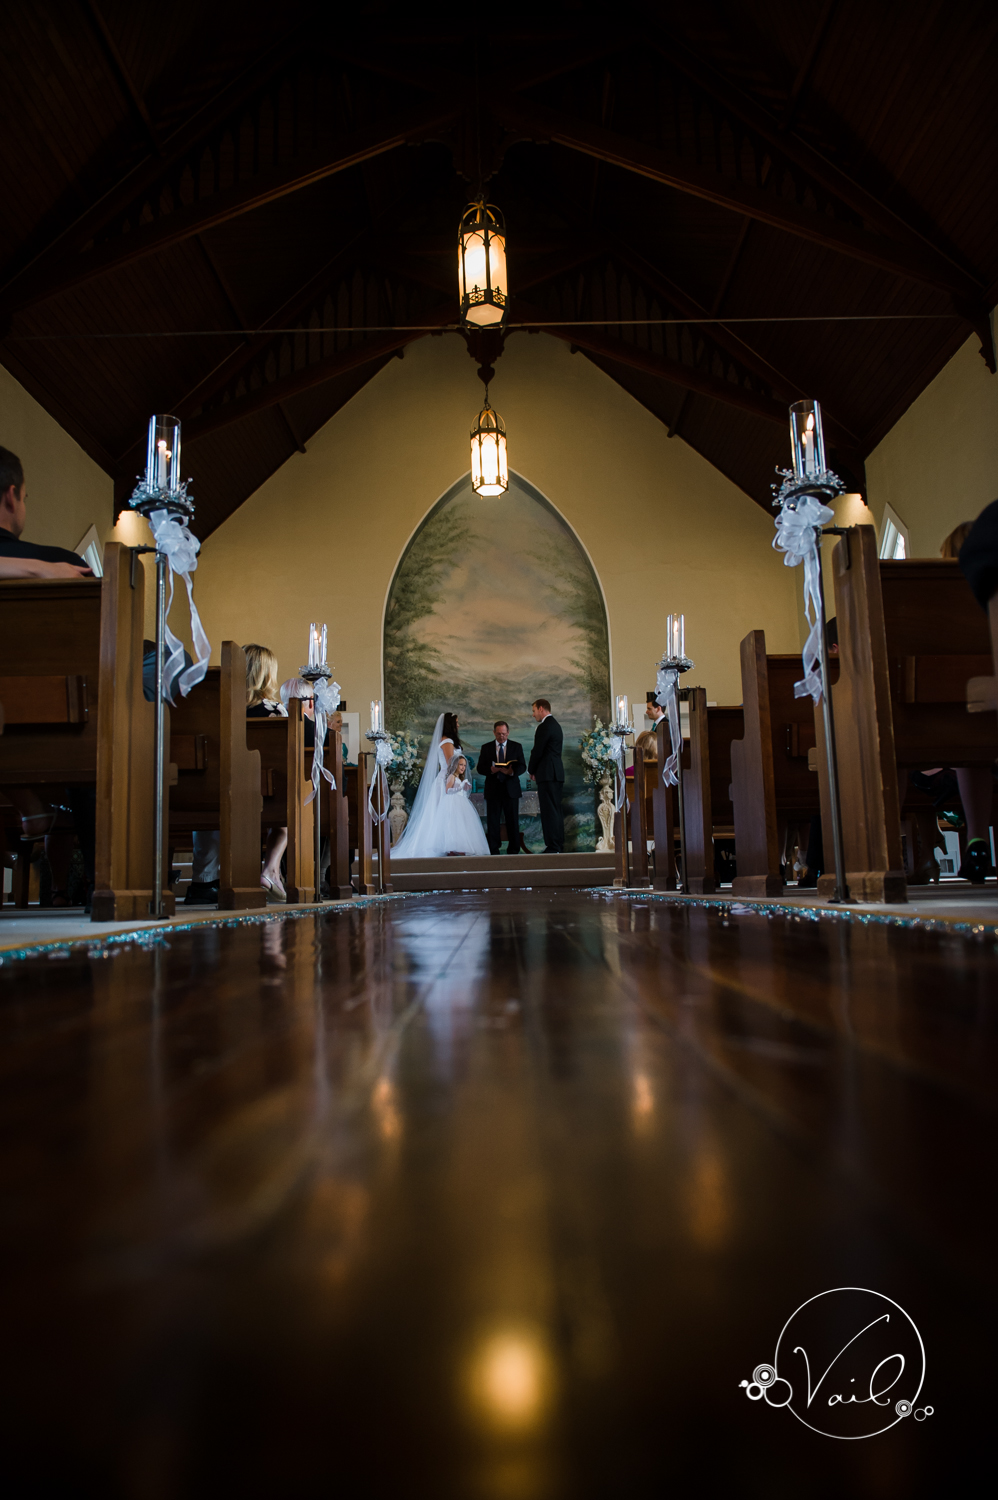 Belle Chapel Snohomish Wedding photographs by Vail Studio-29.jpg